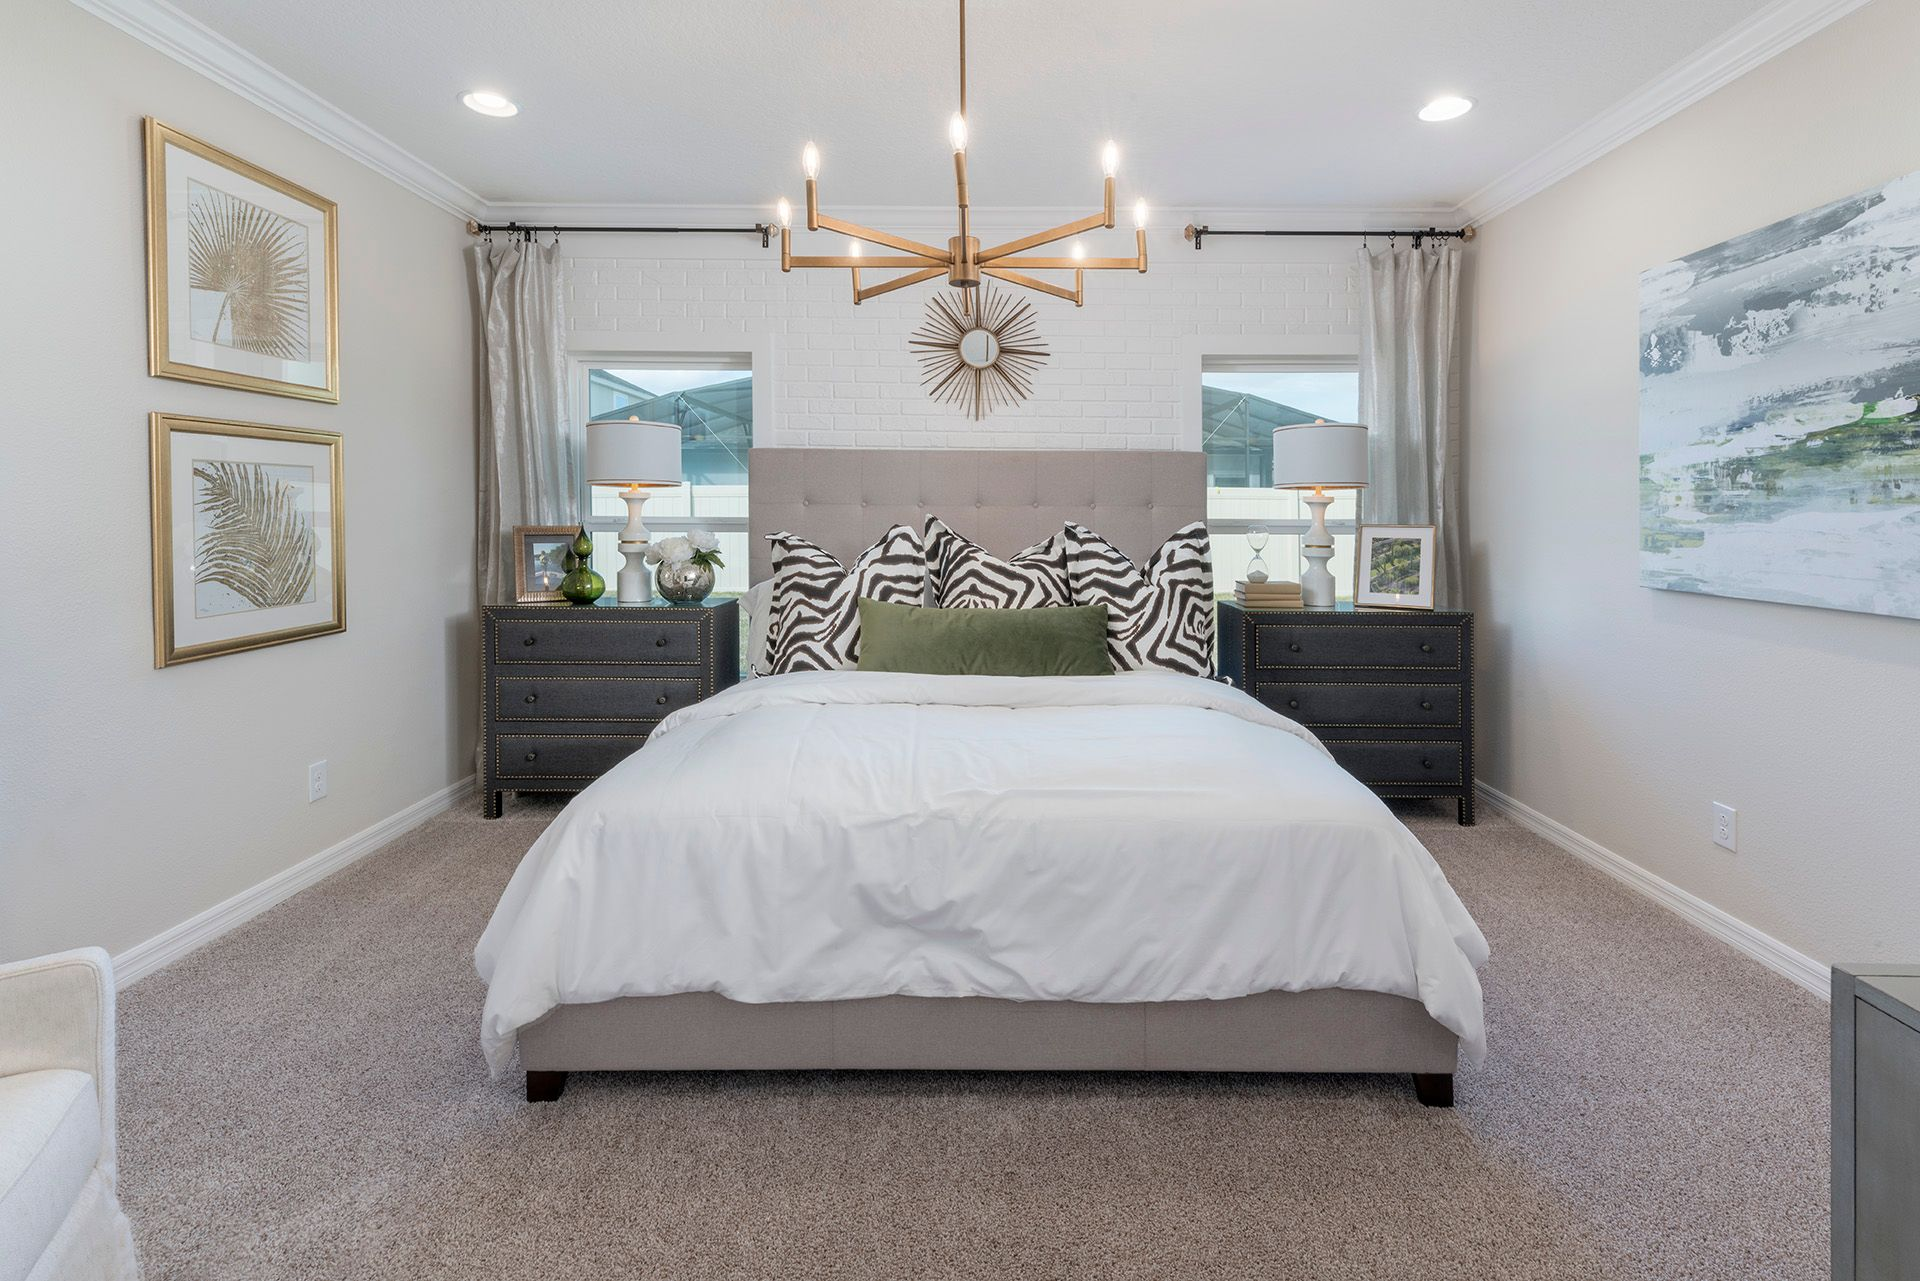 Bedroom featured in the Greenwich Bonus By Hanover Family Builders in Lakeland-Winter Haven, FL